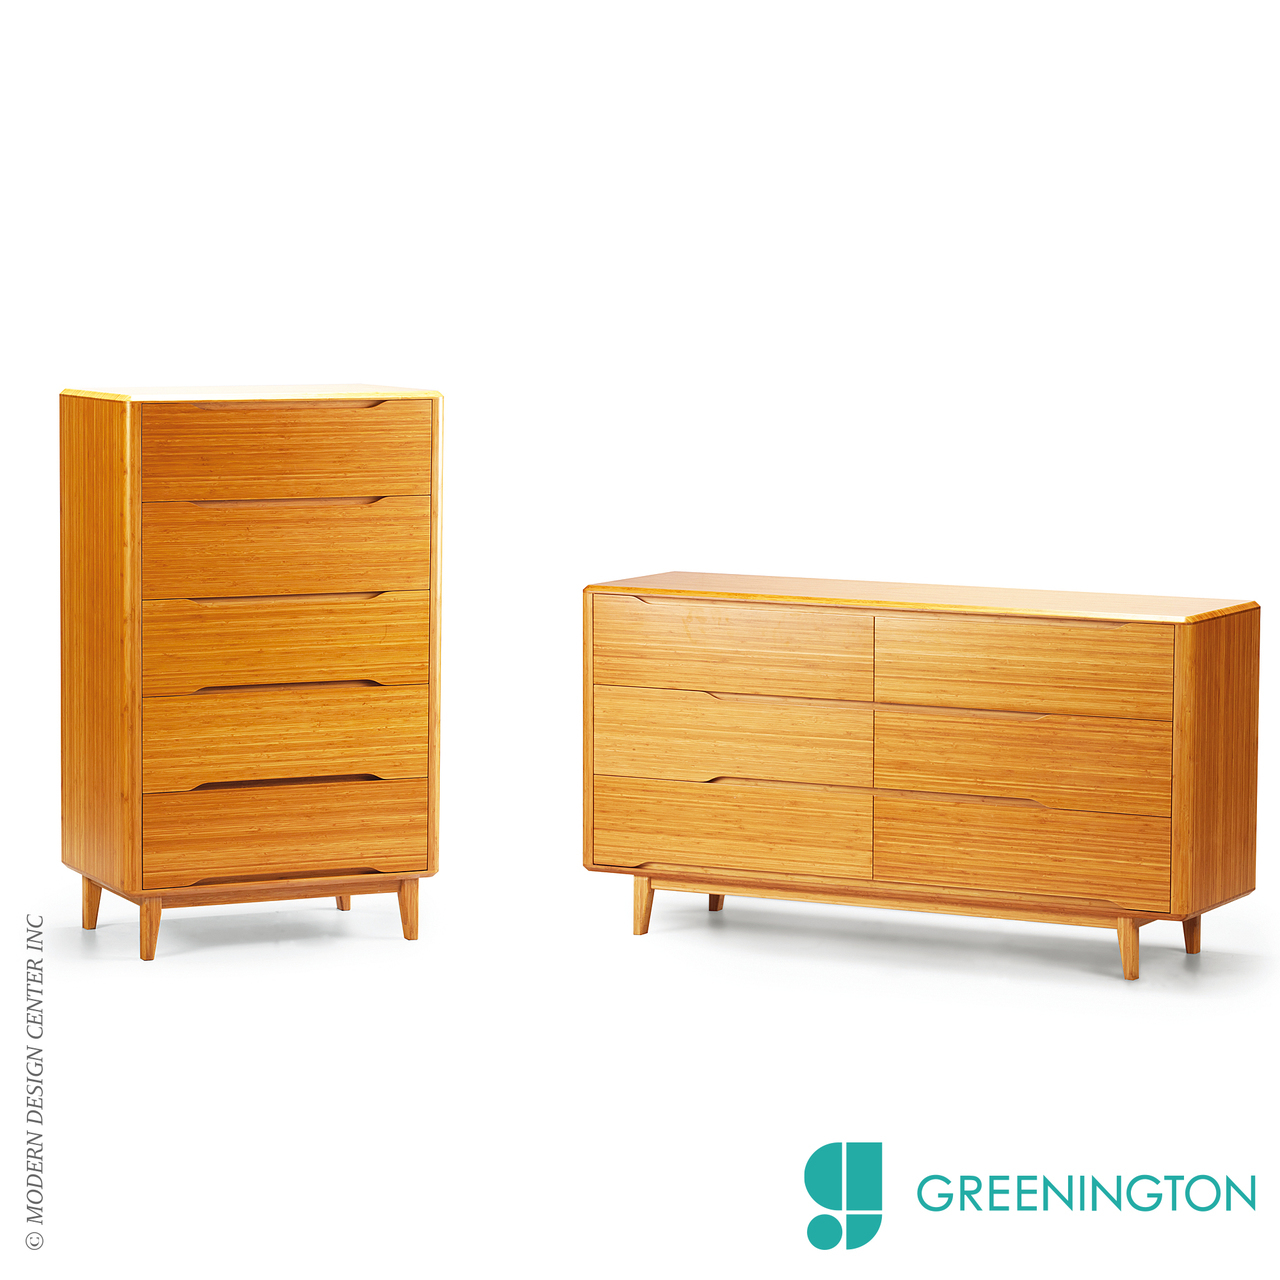 Currant Five Drawer Chest | Greenington